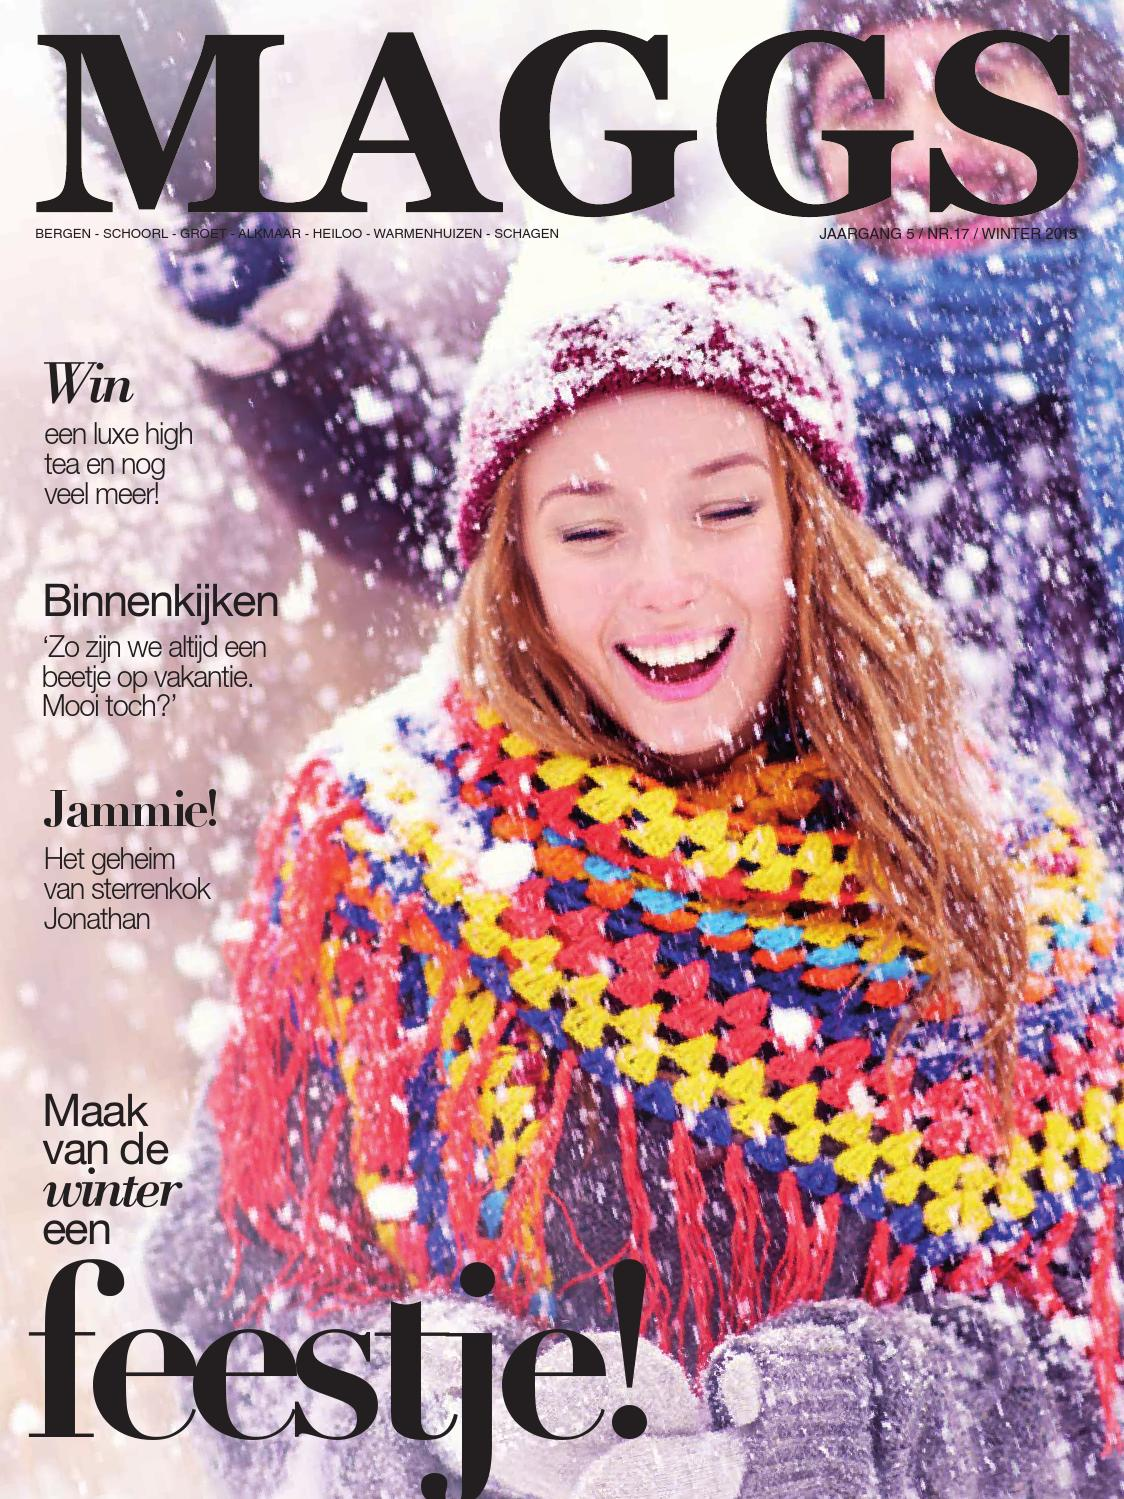 Maggs magazine nr 4 by maggs magazine   issuu